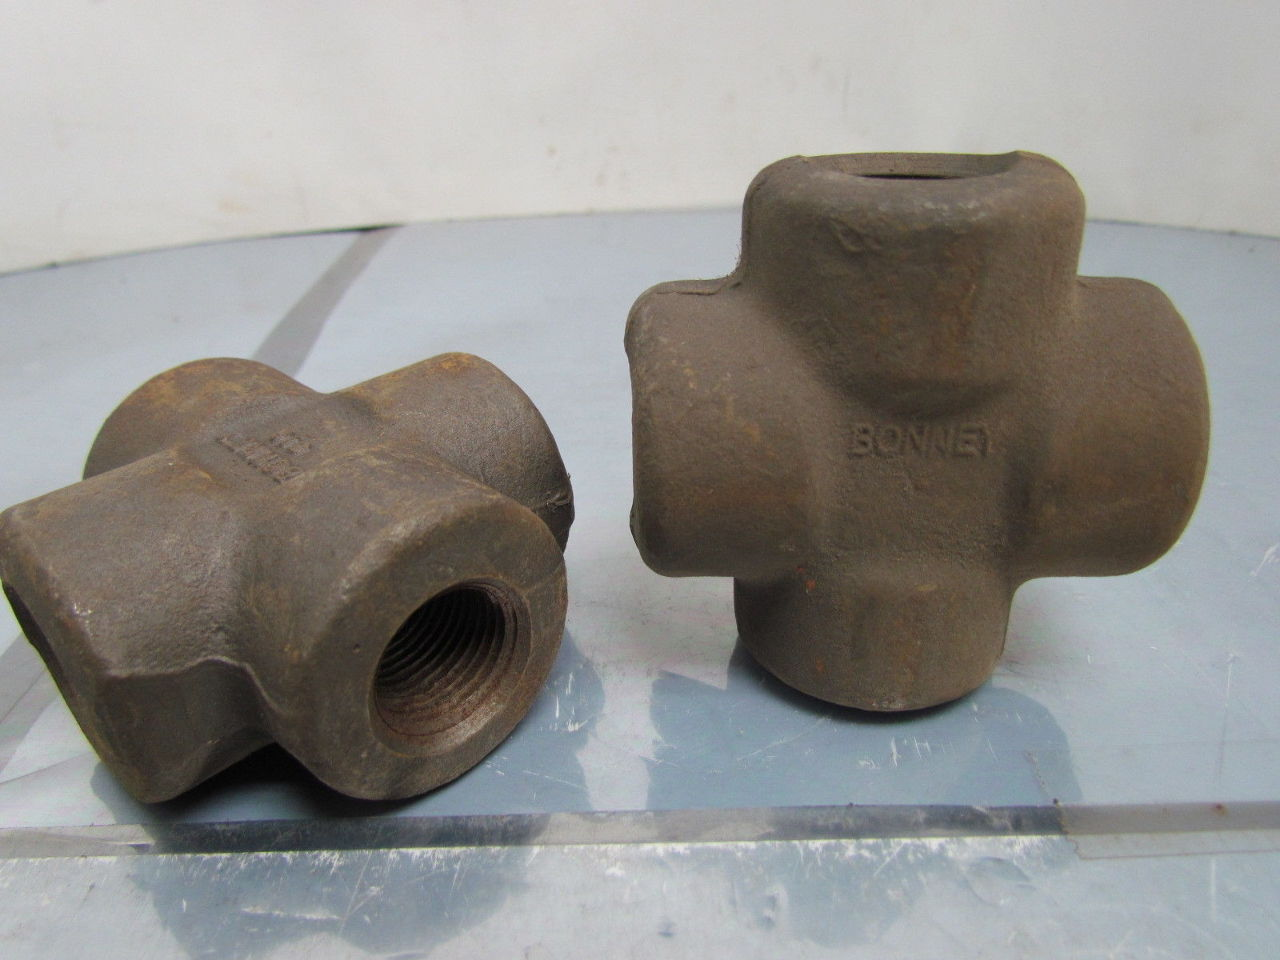 High Pressure Pipe : Quot npt forged steel class high pressure pipe cross